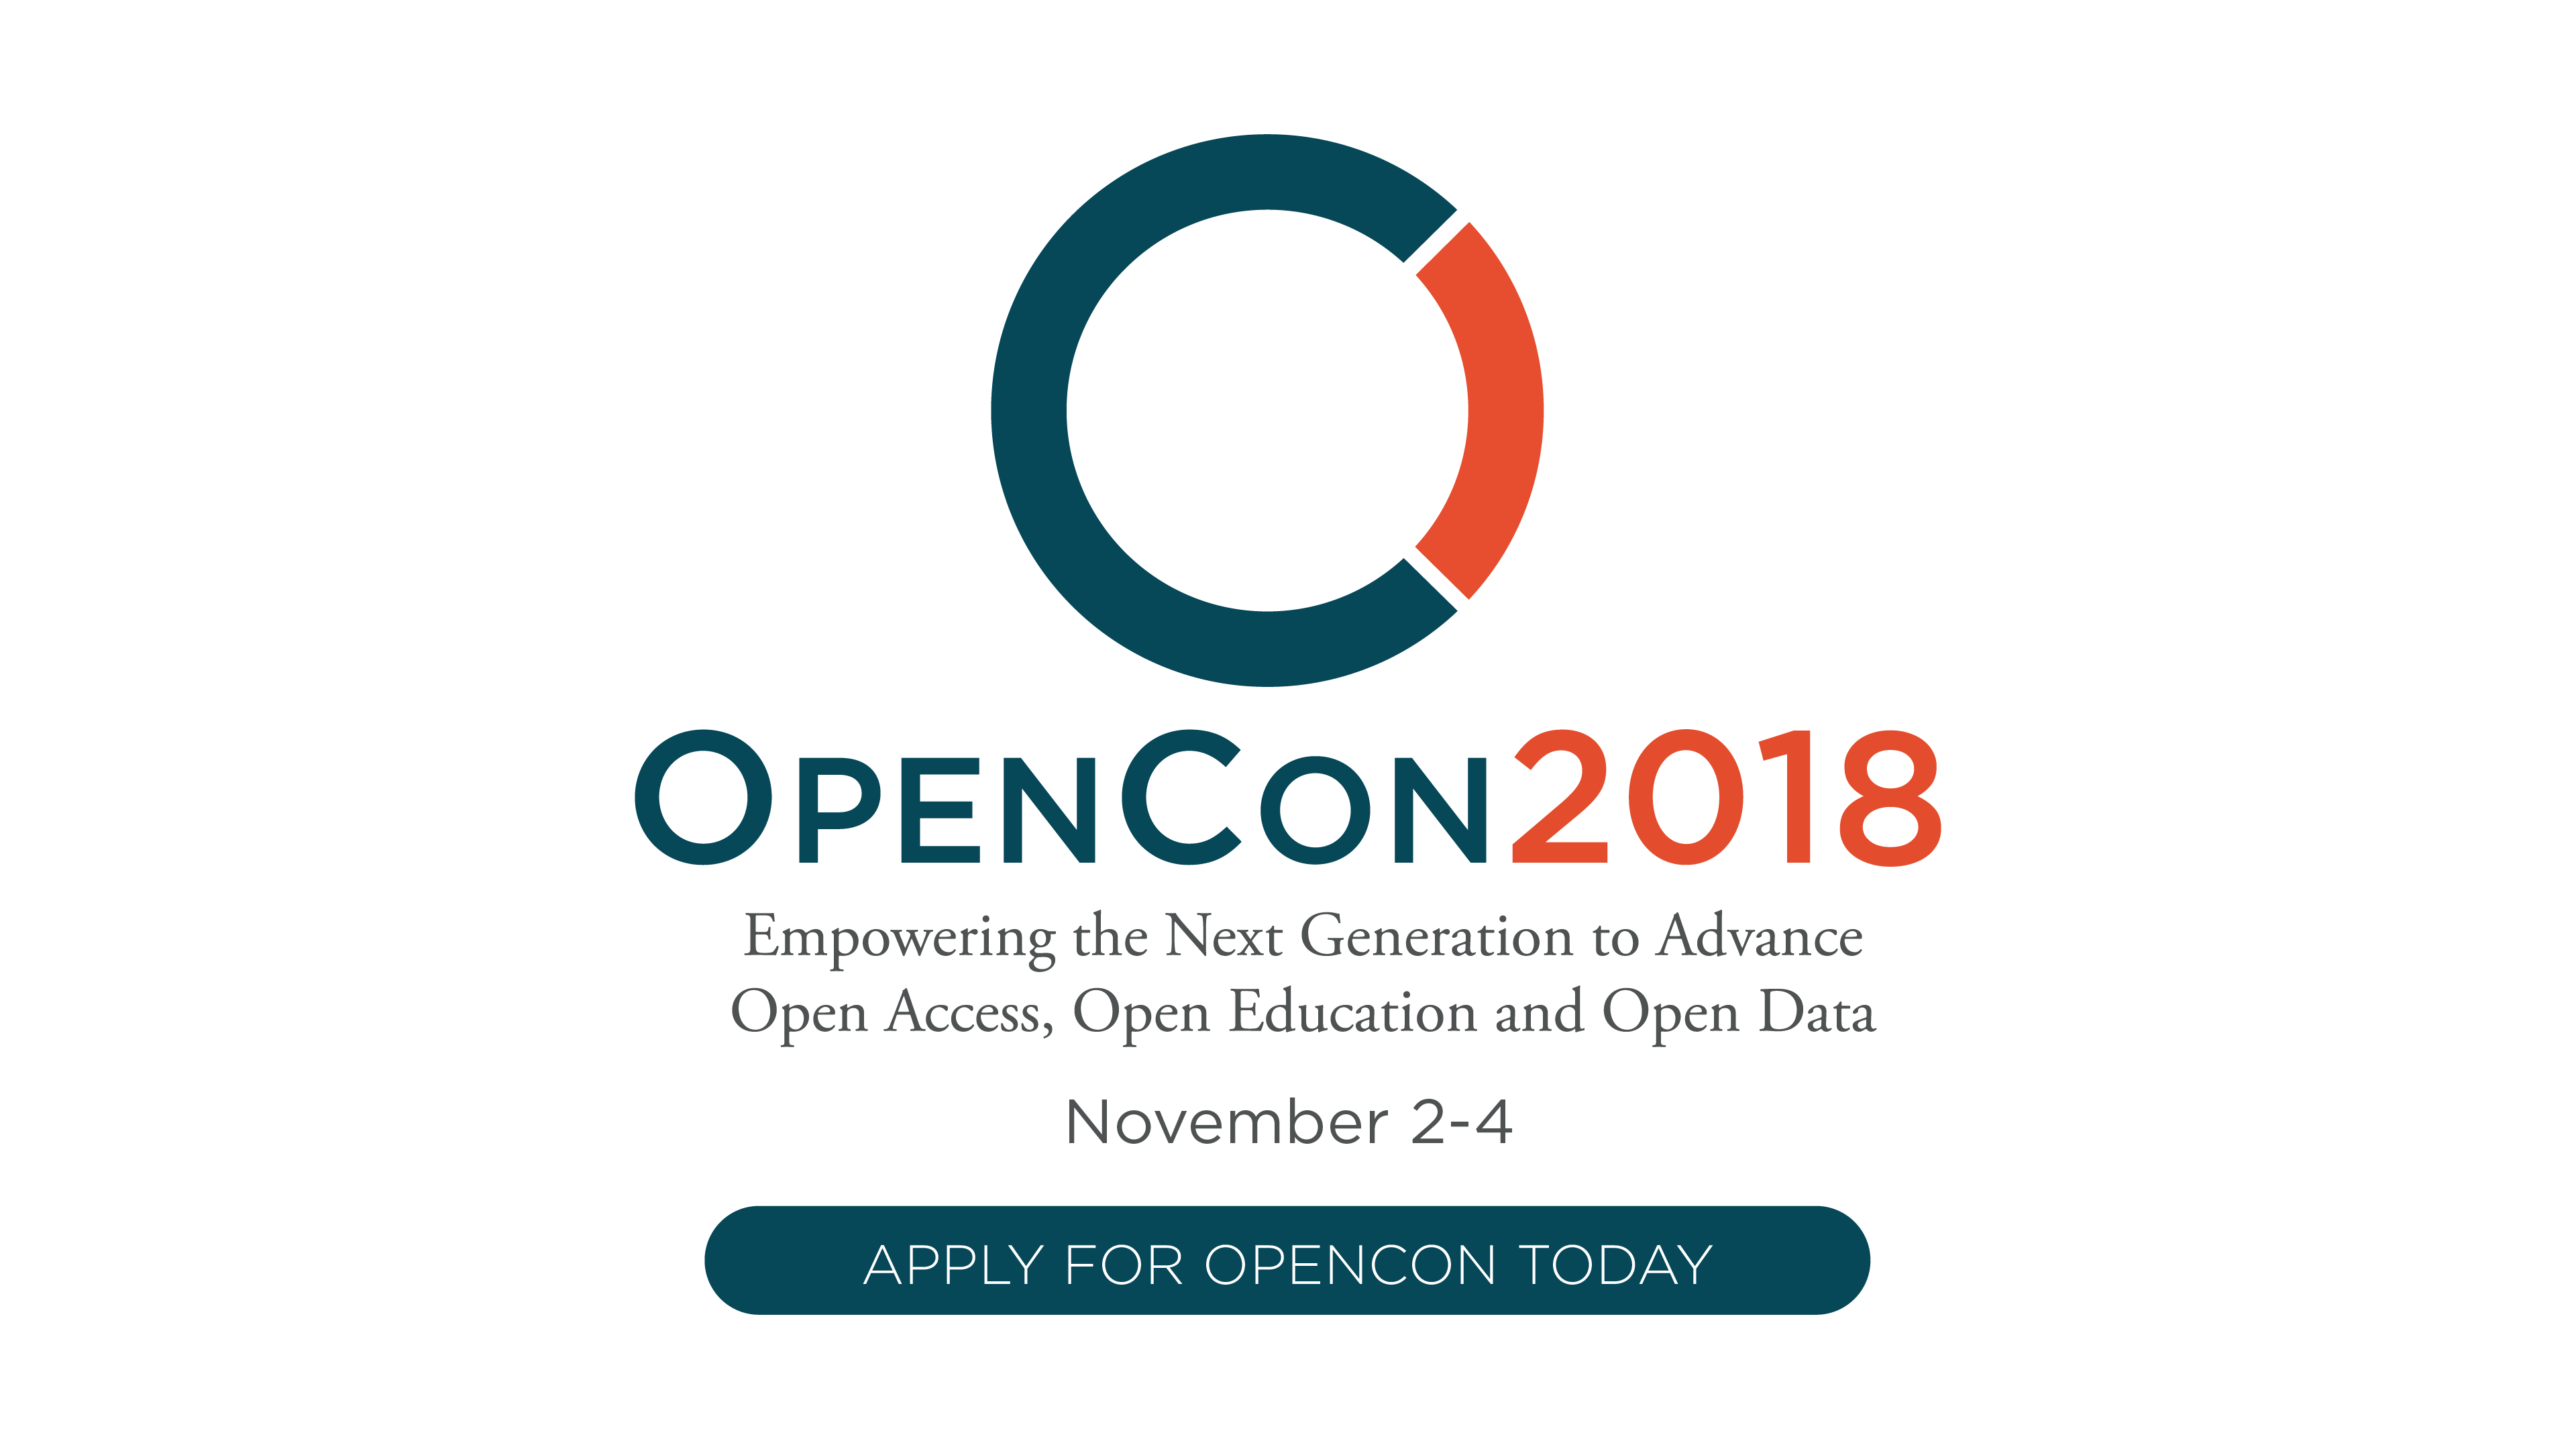 Apply to attend OpenCon 2018 in Toronto, Canada (Travel Scholarships Available)